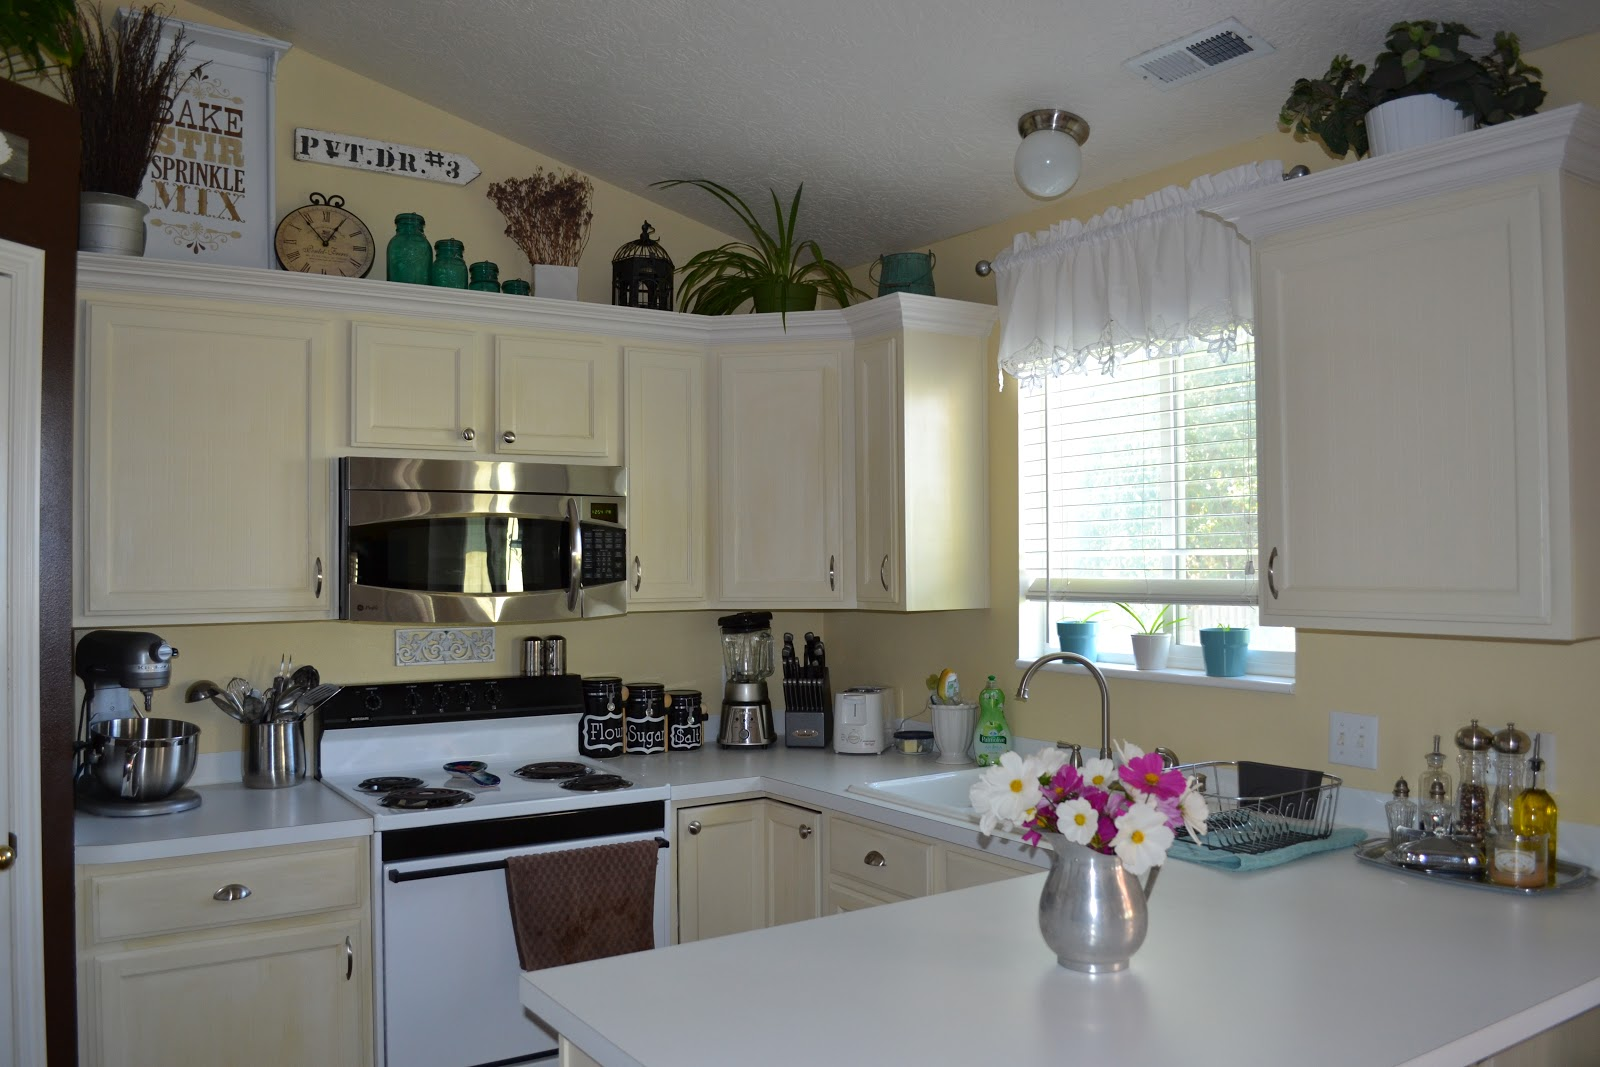 Decorating Above Kitchen Cabinets Ideas On How To Decorate On The Space Above The Cabinets